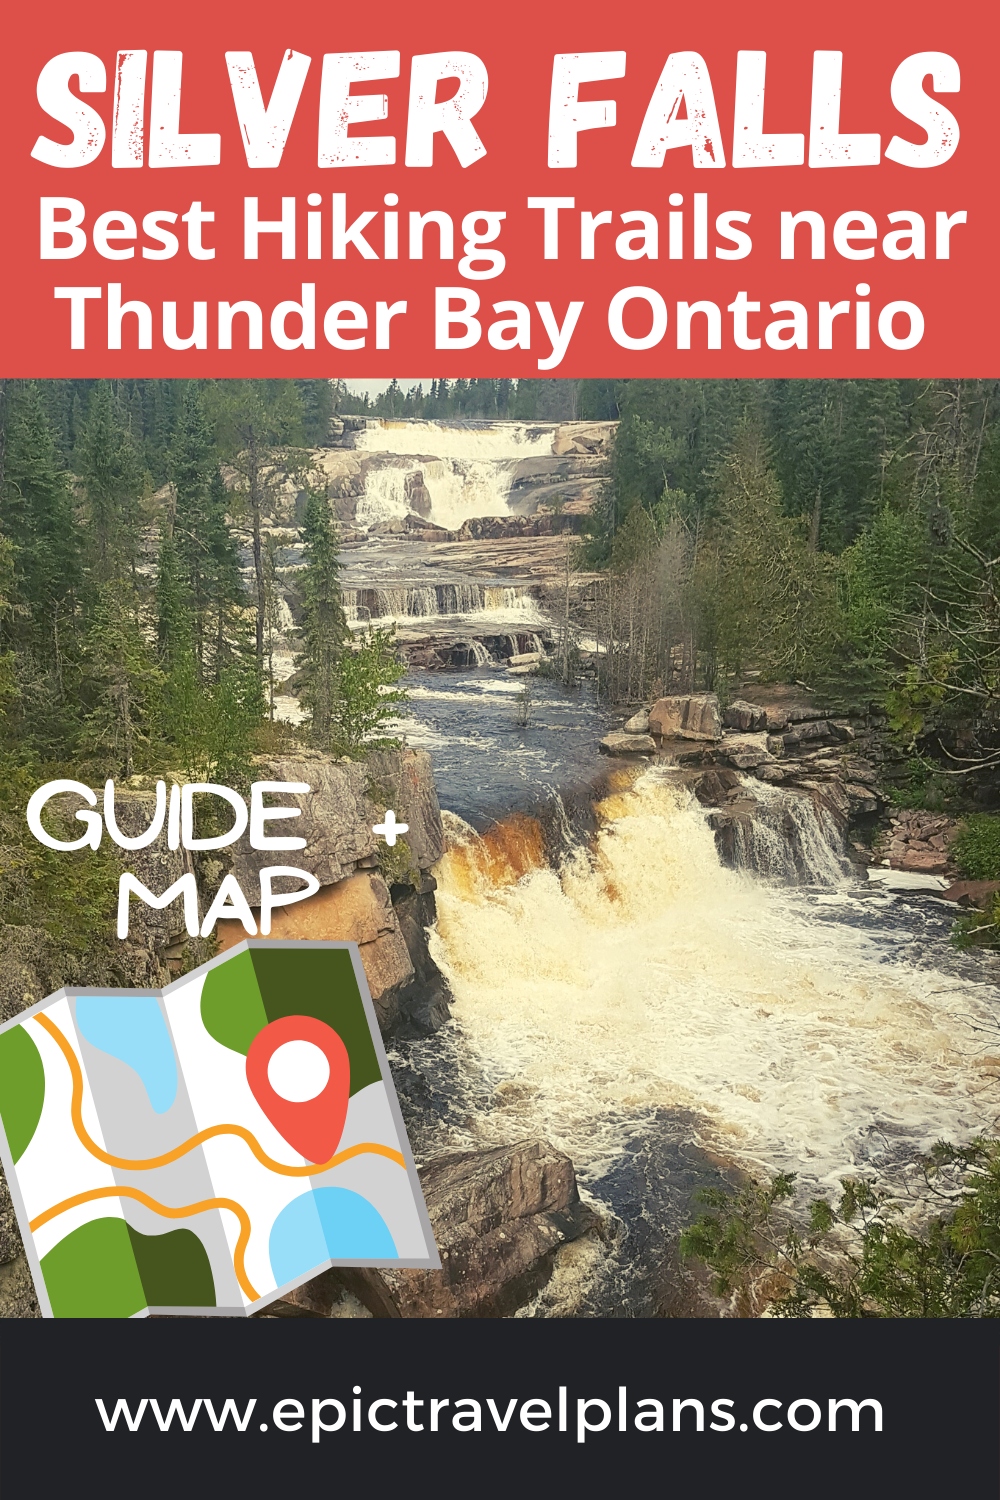 Silver Falls hike near Thunder Bay Ontario, Best hiking trails in Northern Ontario Canada, beautiful waterfalls in Canada